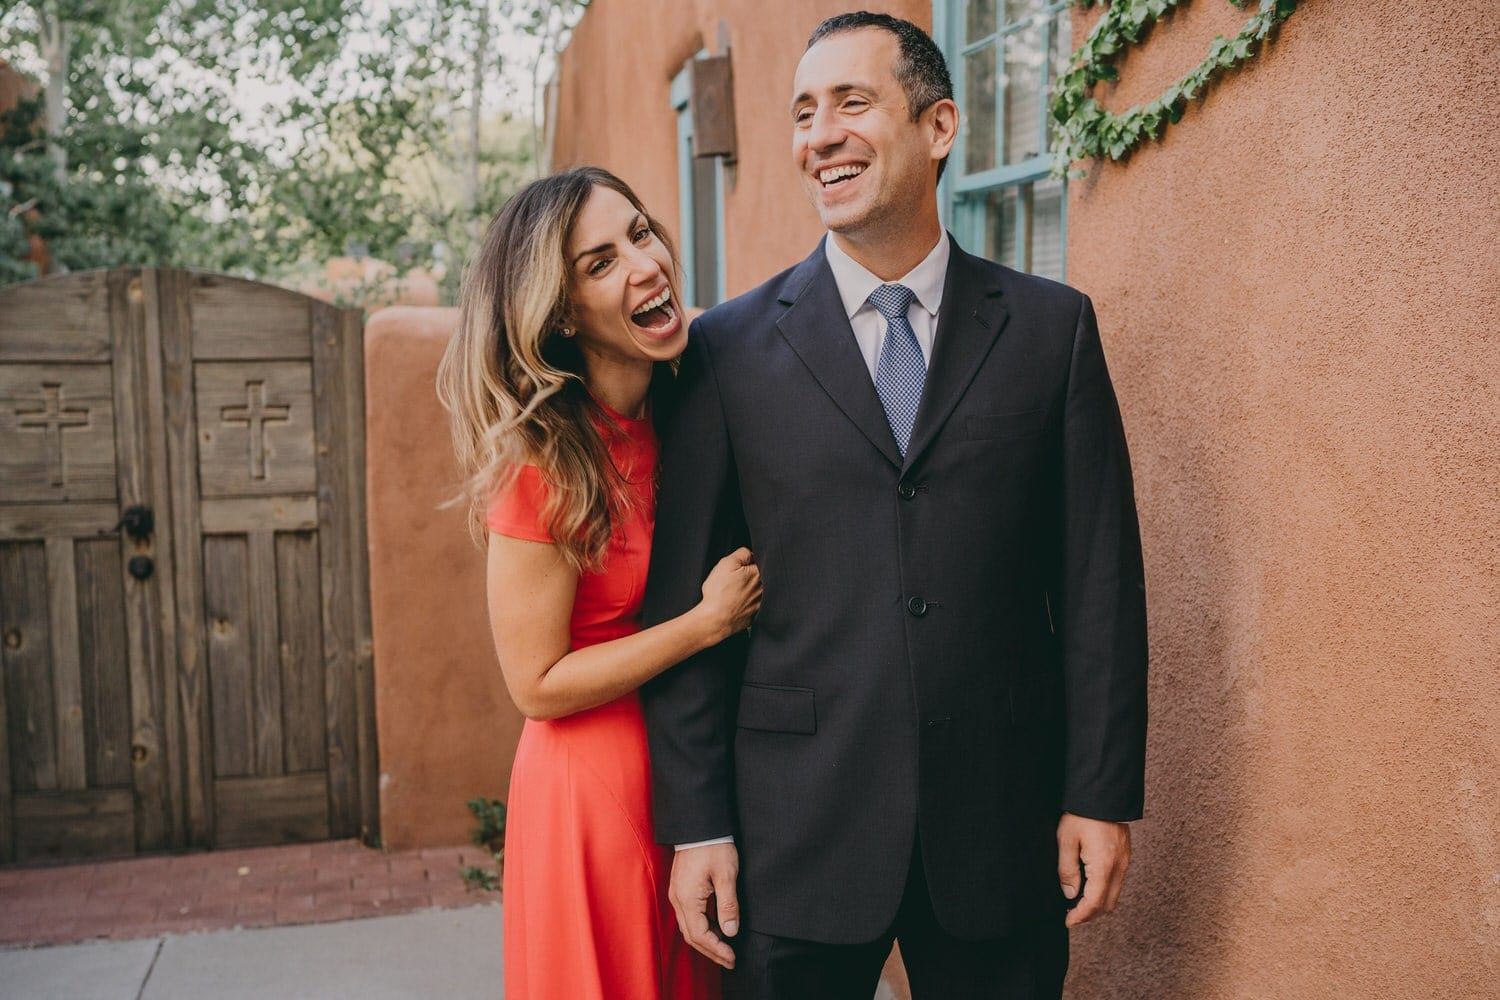 Groom and his sister laughing following their wedding in Santa Fe